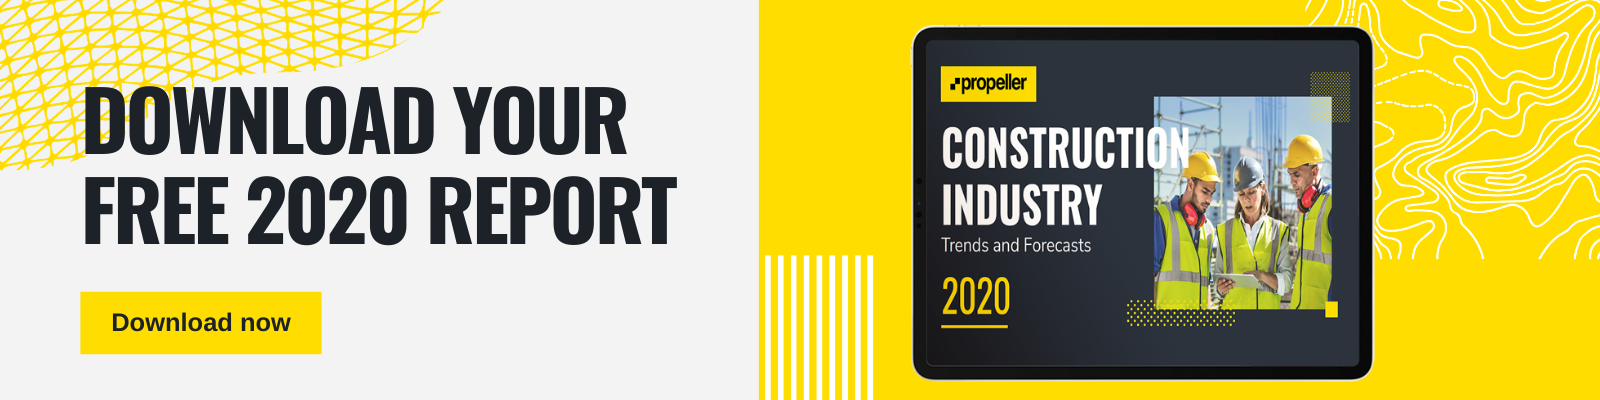 Construction Trends Report 2020